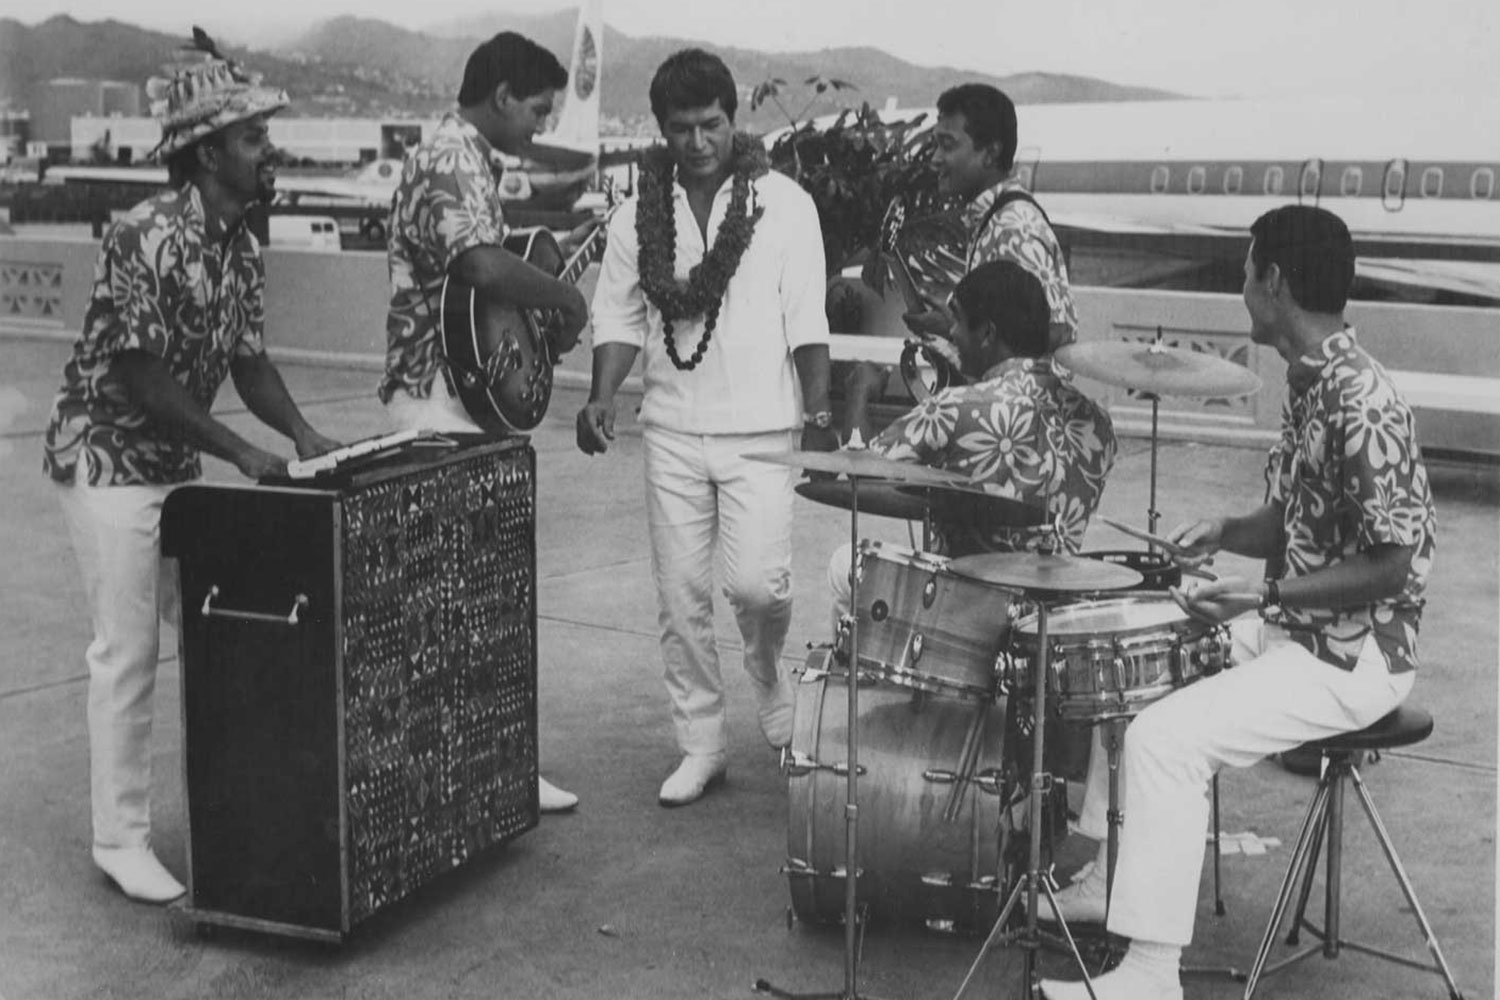 Black and white photo of Don Ho and The Aliis band